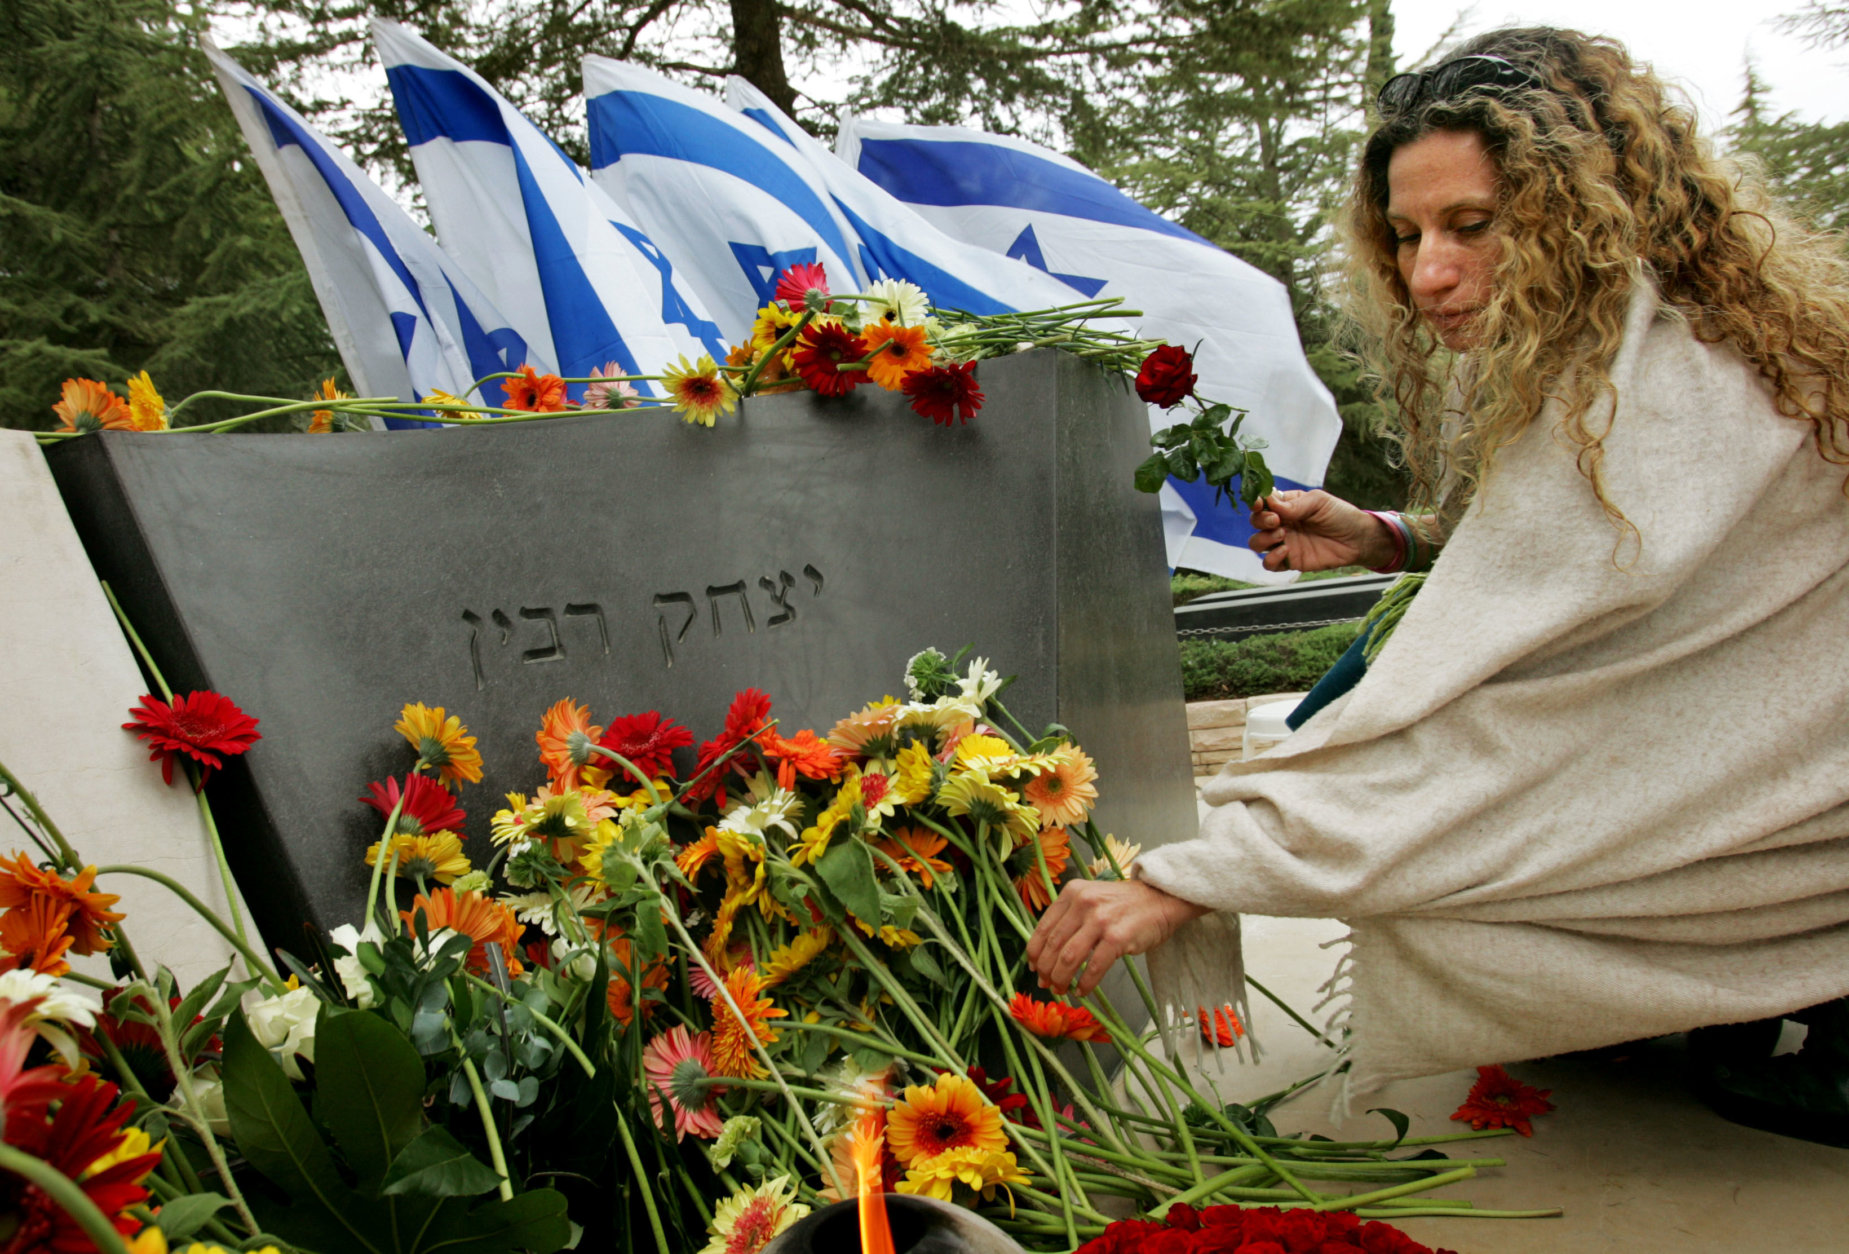 An Israeli woman lays a flower at the grave of late Israeli Prime Minister Yitzhak Rabin during a memorial at Mount Hertzl cemetery in Jerusalem, Friday, Nov. 4, 2005. On the 10-year anniversary of the assassination of Prime Minister Yitzhak Rabin, the official who was responsible for the Israeli leader's security is calling for a new investigation into the killing. (AP Photo/Kevin Frayer)